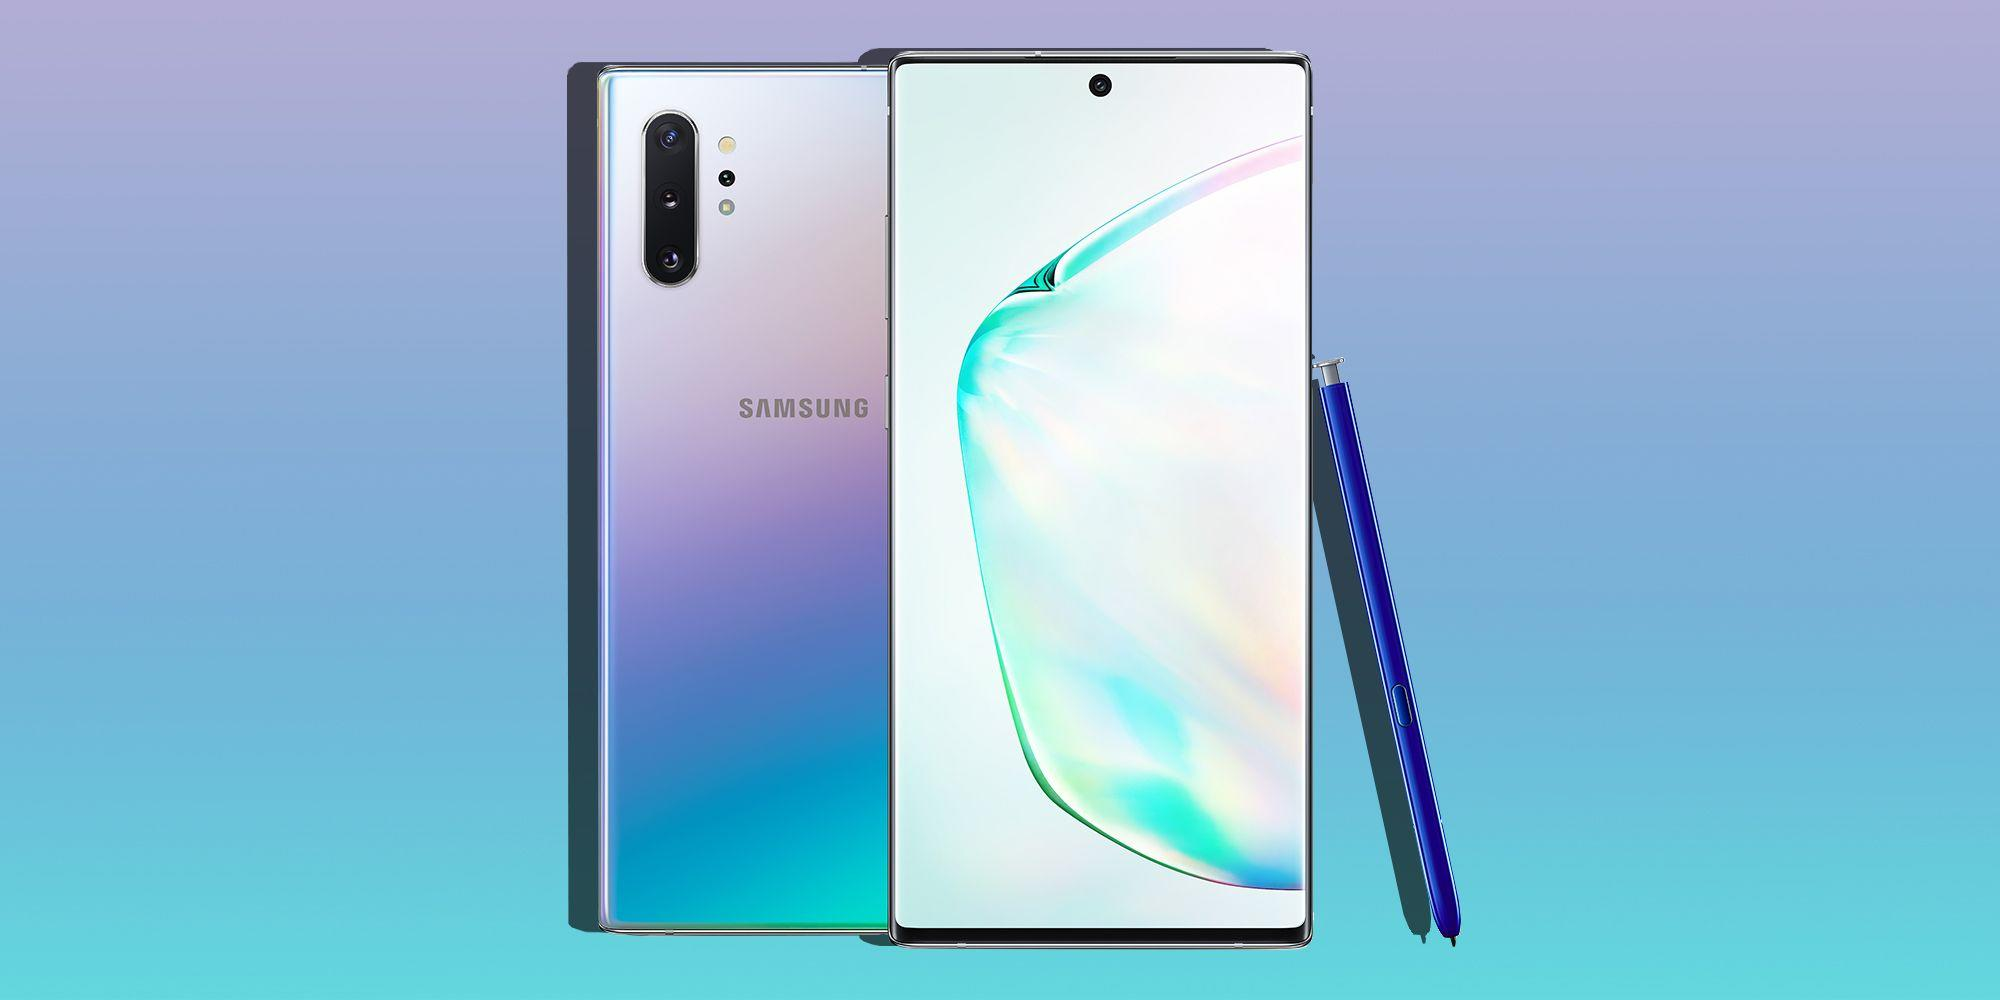 "<p>After months of additional development, the Samsung Galaxy Fold is finally <a href=""https://news.samsung.com/us/galaxy-fold-experience-comes-to-us/"" rel=""nofollow noopener"" target=""_blank"" data-ylk=""slk:ready to ship to consumers"" class=""link rapid-noclick-resp"">ready to ship to consumers</a>. The Android device has a folding display, which, at least for the the time being, makes it the only product of its kind. In a manner befitting its cutting-edge design, the Galaxy Fold is also the most expensive smartphone Samsung currently offers.</p><p>Also, the <a href=""https://news.samsung.com/us/introducing-galaxy-note10-unpacked-2019/"" rel=""nofollow noopener"" target=""_blank"" data-ylk=""slk:new Samsung Galaxy Note is here"" class=""link rapid-noclick-resp"">new Samsung Galaxy Note is here</a>! The 10th installment of the iconic Samsung Galaxy Note product line includes two distinct members — the Galaxy Note10 with a 6.3-inch display and the Galaxy Note10+ with a ginormous 6.8-inch panel. </p><p>The S Pen-toting Android newcomers will join the <a href=""http://www.amazon.com/dp/B07N4M7F9Q/?tag=bp_links-20&ascsubtag=%5bartid